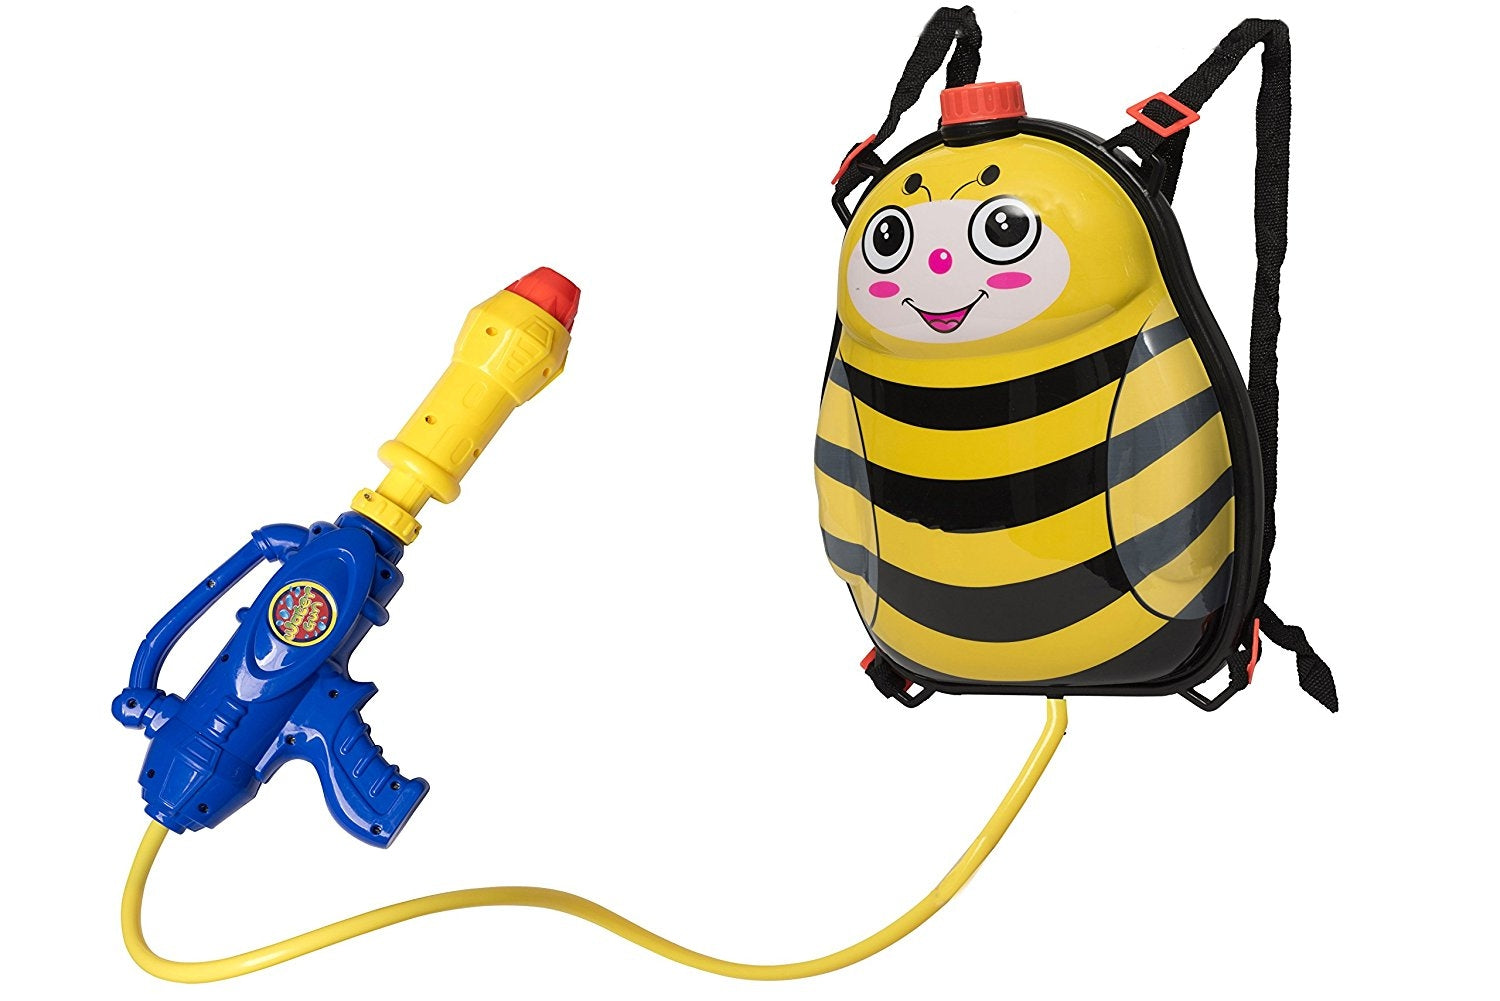 Toyrifik Water Gun Backpack Water Blaster For kids -Water Shooter With Tank Bumble Bee Toys For Kids- Summer Outdoor Toys For Pool Beach Water Toys For Kids